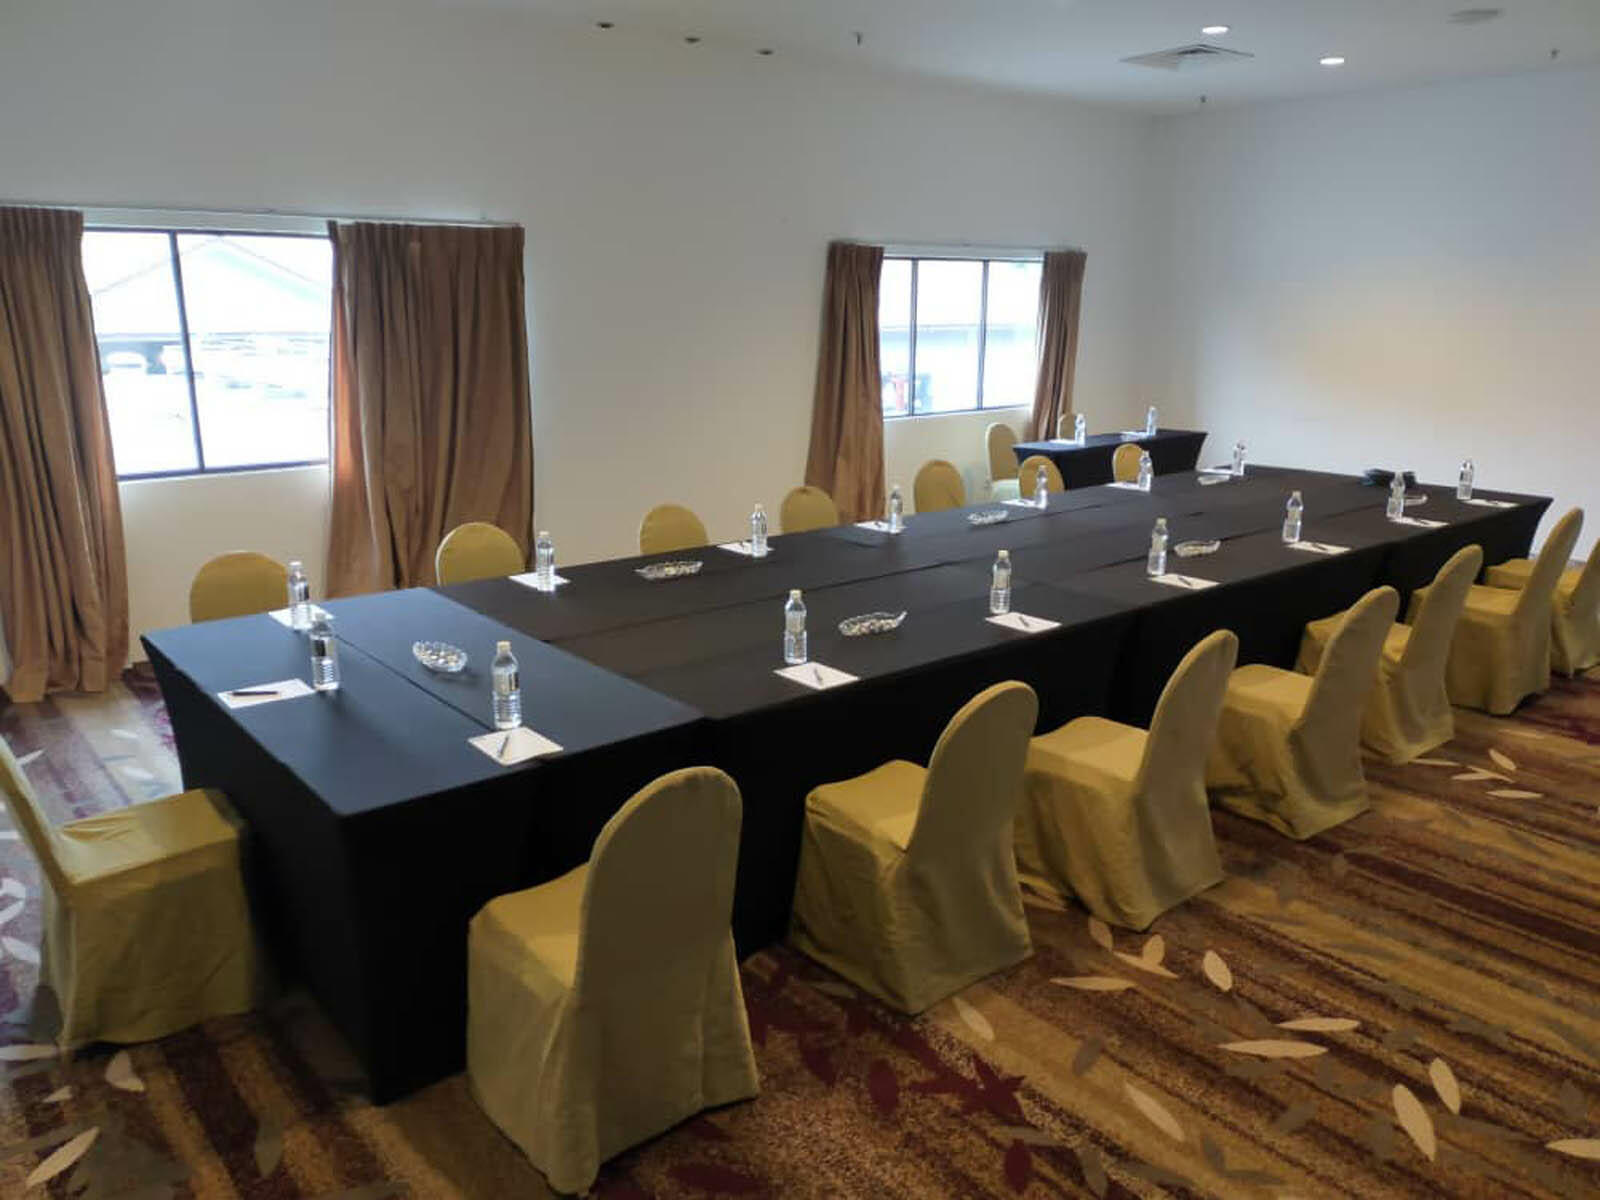 The arranged Cumberland meeting room with chairs and a table